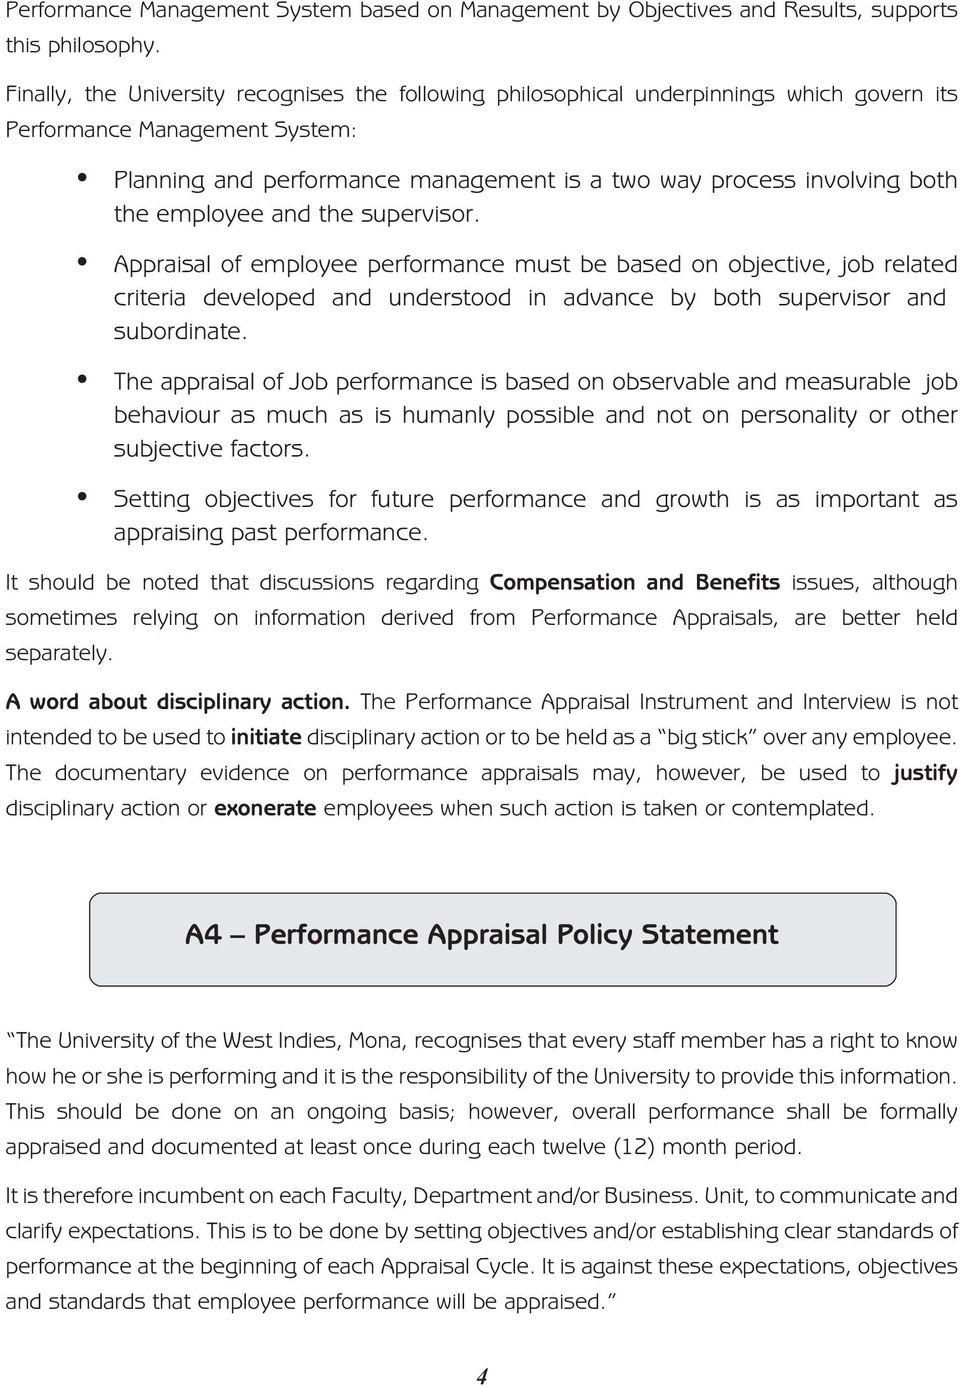 the employee and the supervisor. Appraisal of employee performance must be based on objective, job related criteria developed and understood in advance by both supervisor and subordinate.